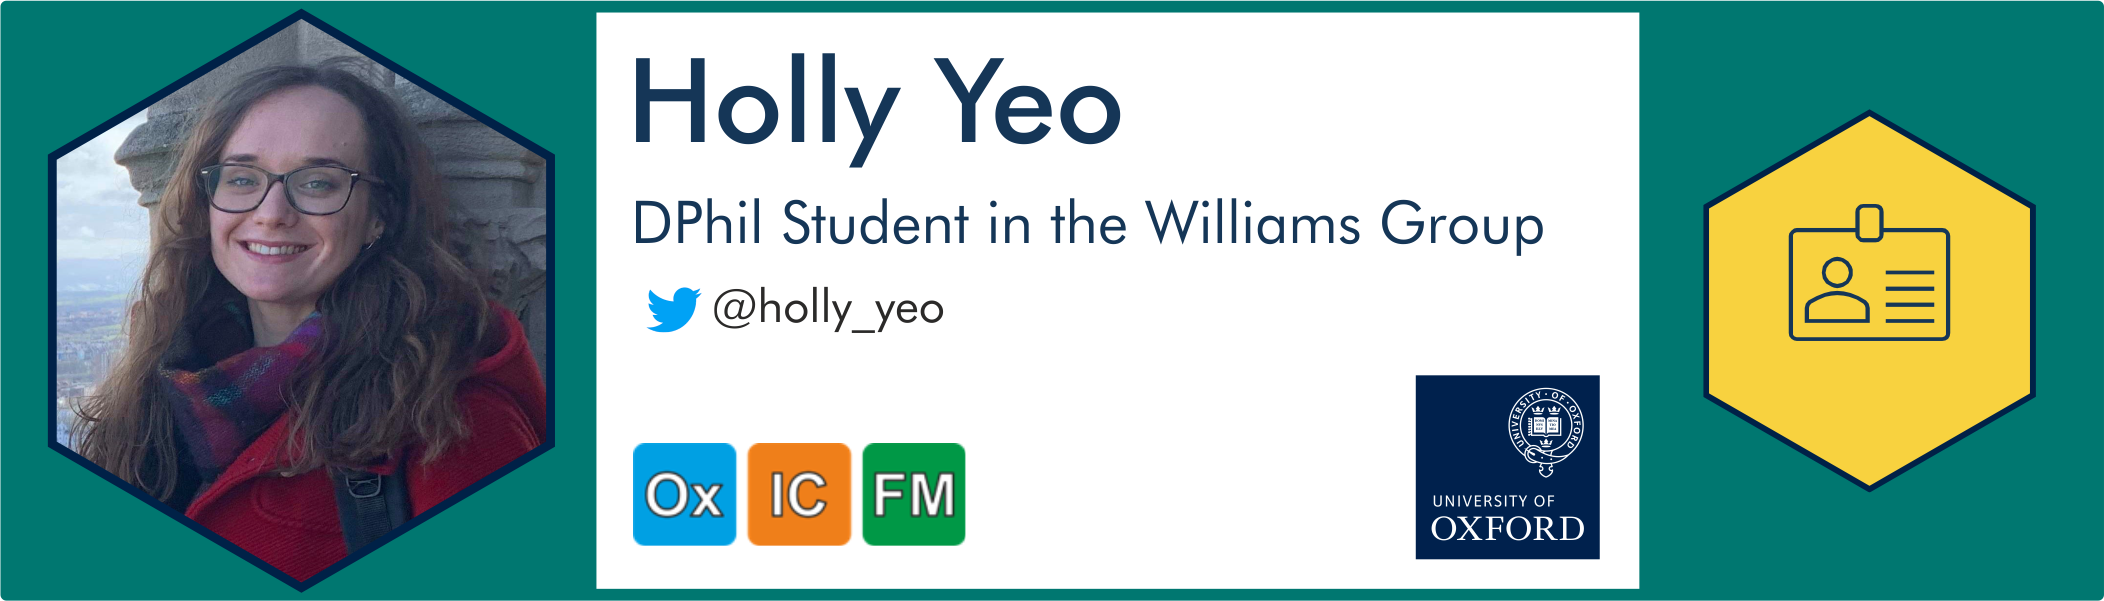 Holly Yeo further information